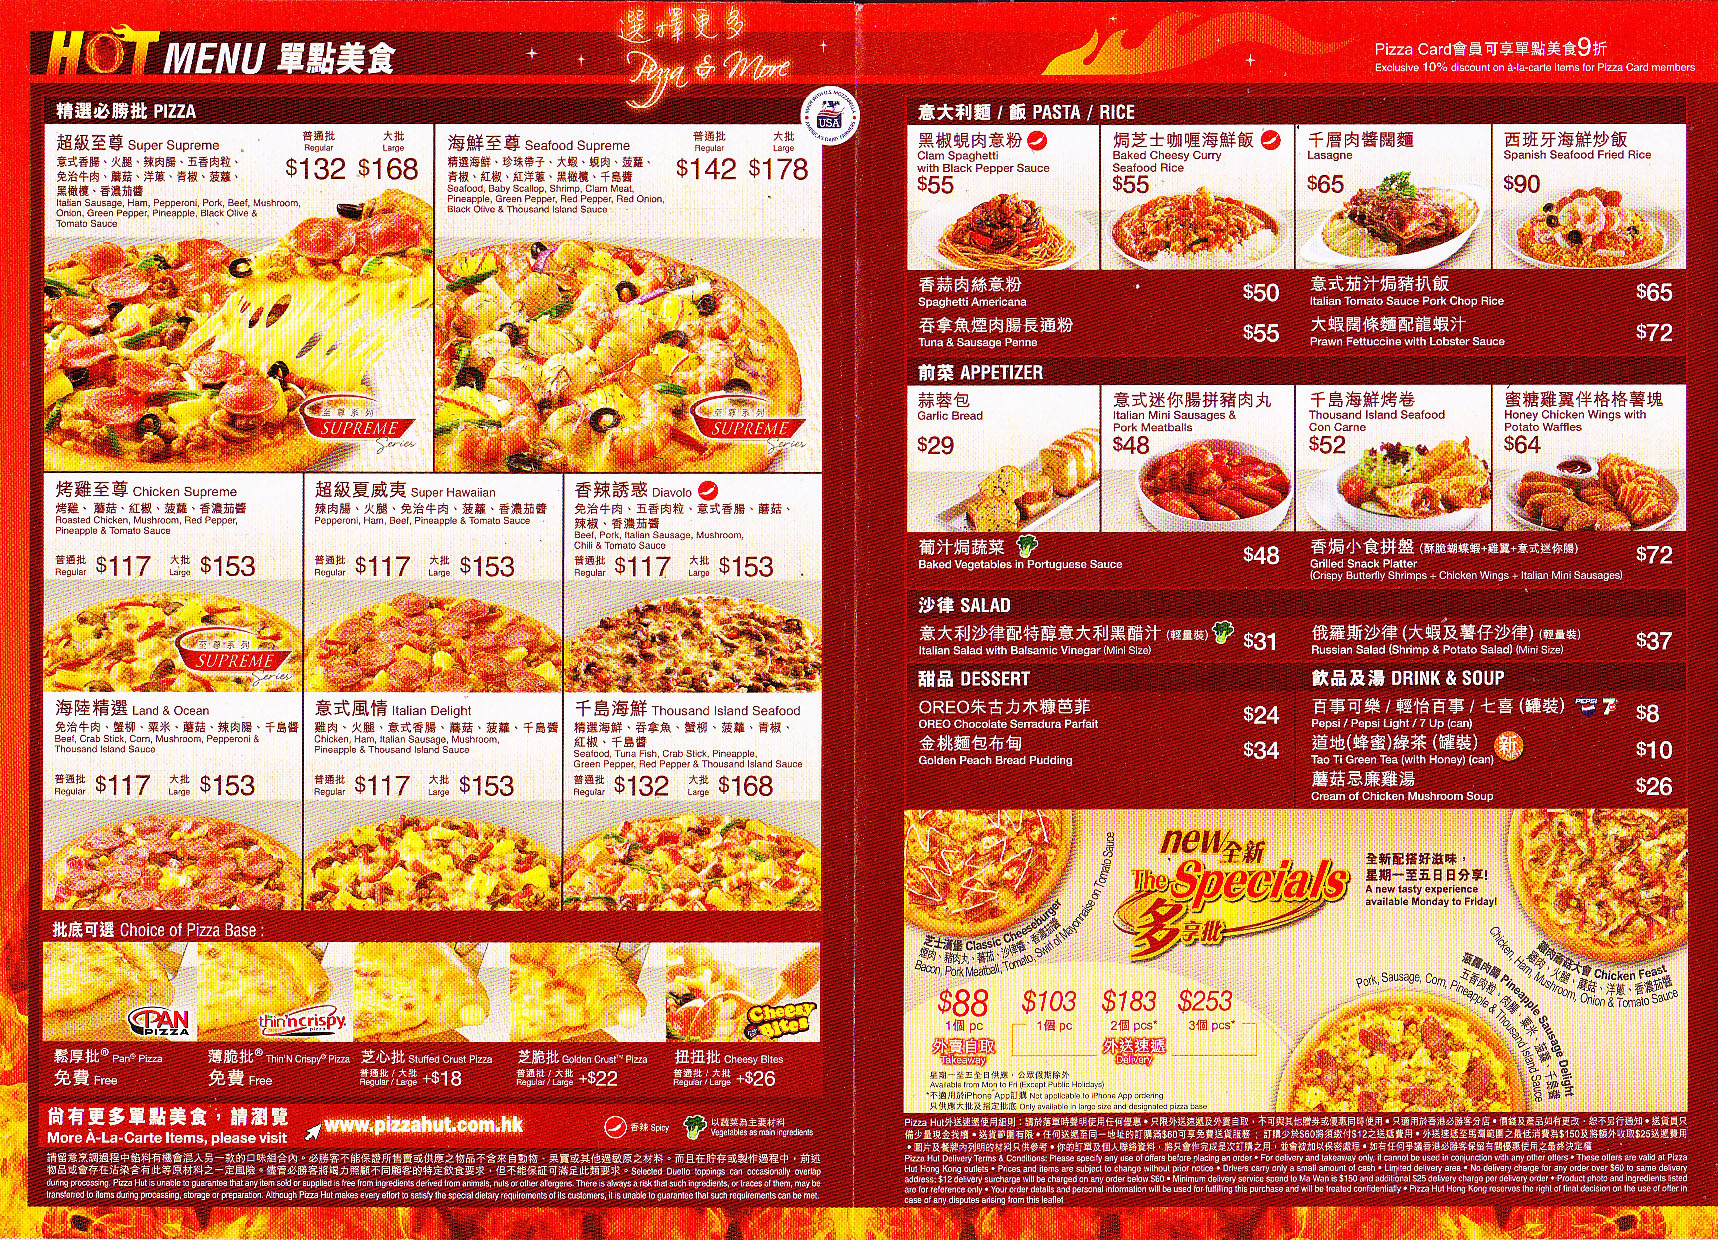 Pizza Hut Menu 2013 | www.imgkid.com - The Image Kid Has It!